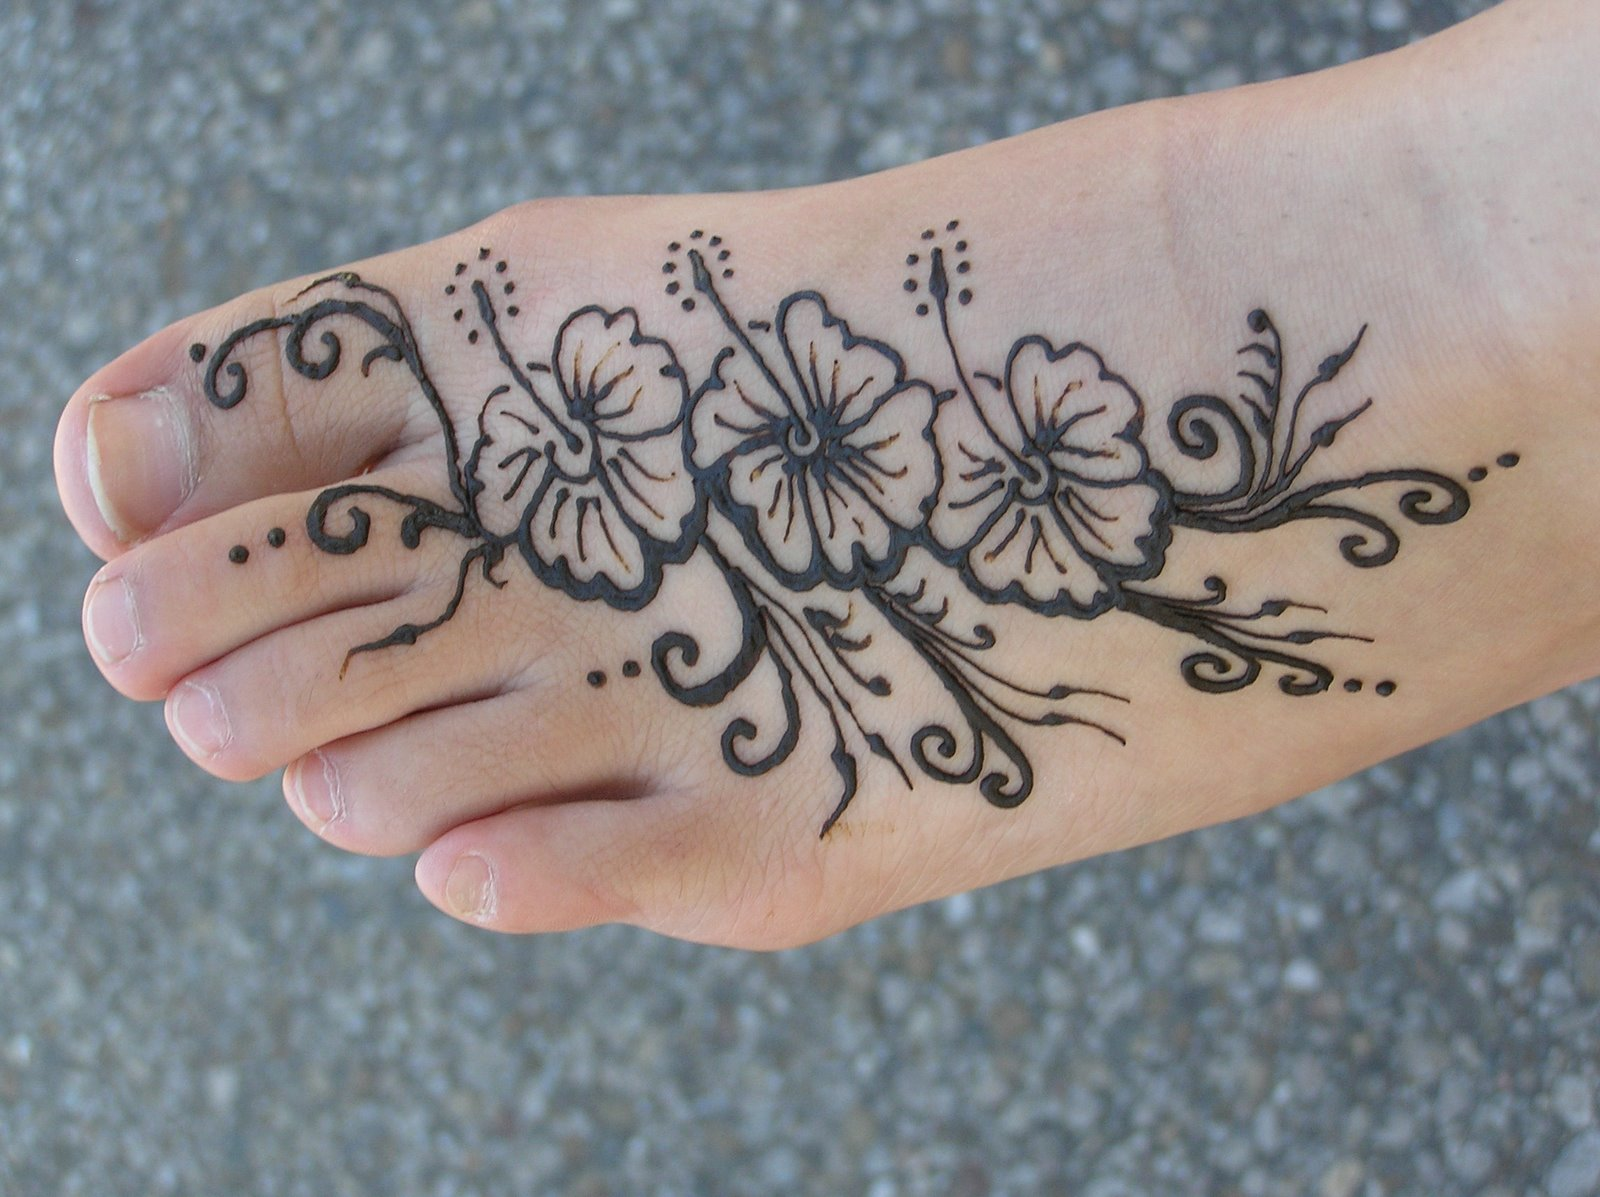 Http Tattoosforgirls7 Blogspot Com 2012 04 5 Feminine Flower Tattoos For Girls On Html